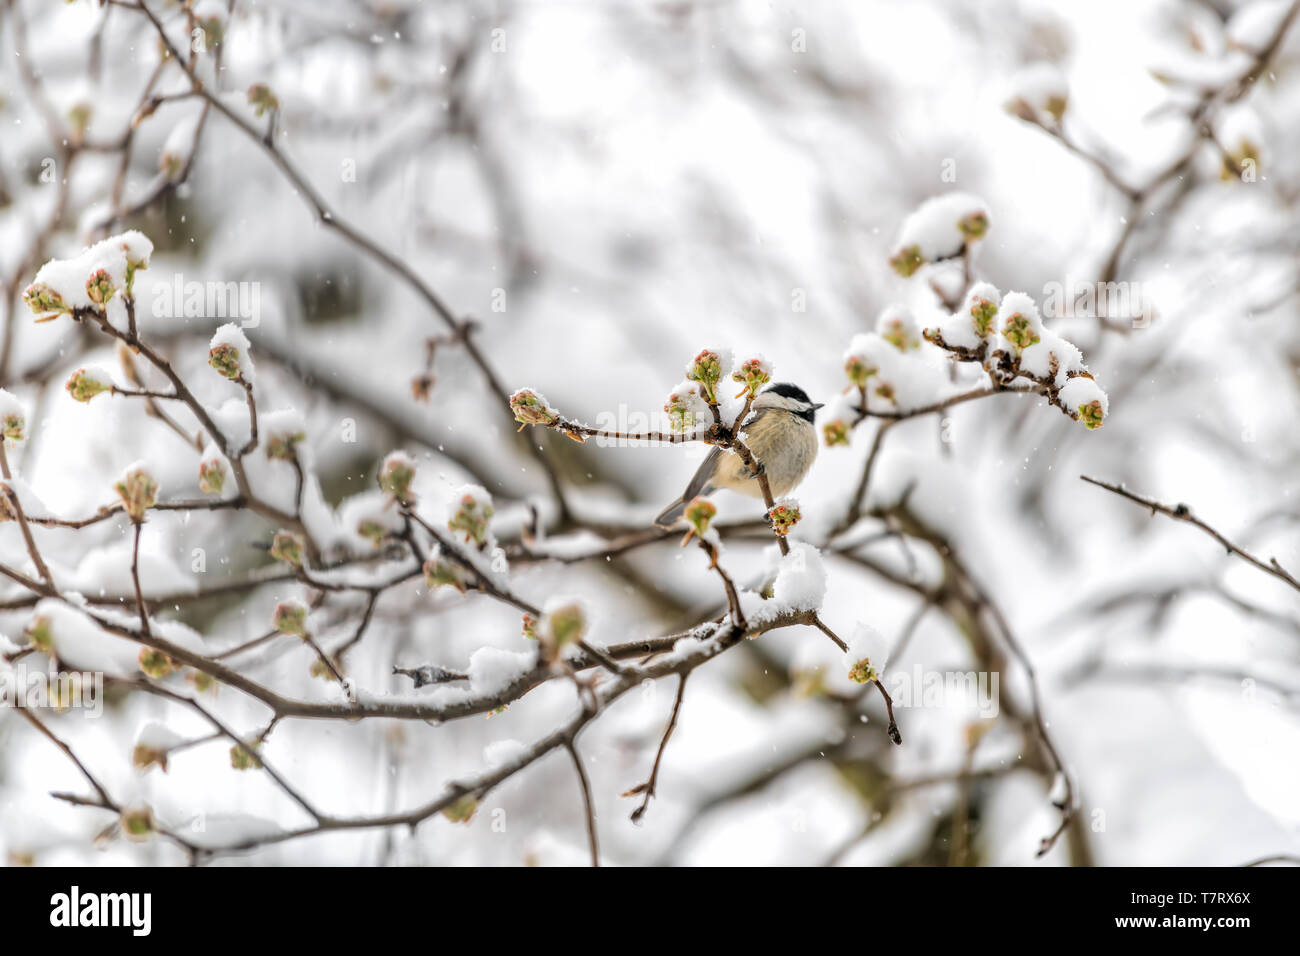 Closeup of one small brown carolina chickadee bird perched on tree branch during heavy winter snow colorful in Virginia with flower buds in spring - Stock Image